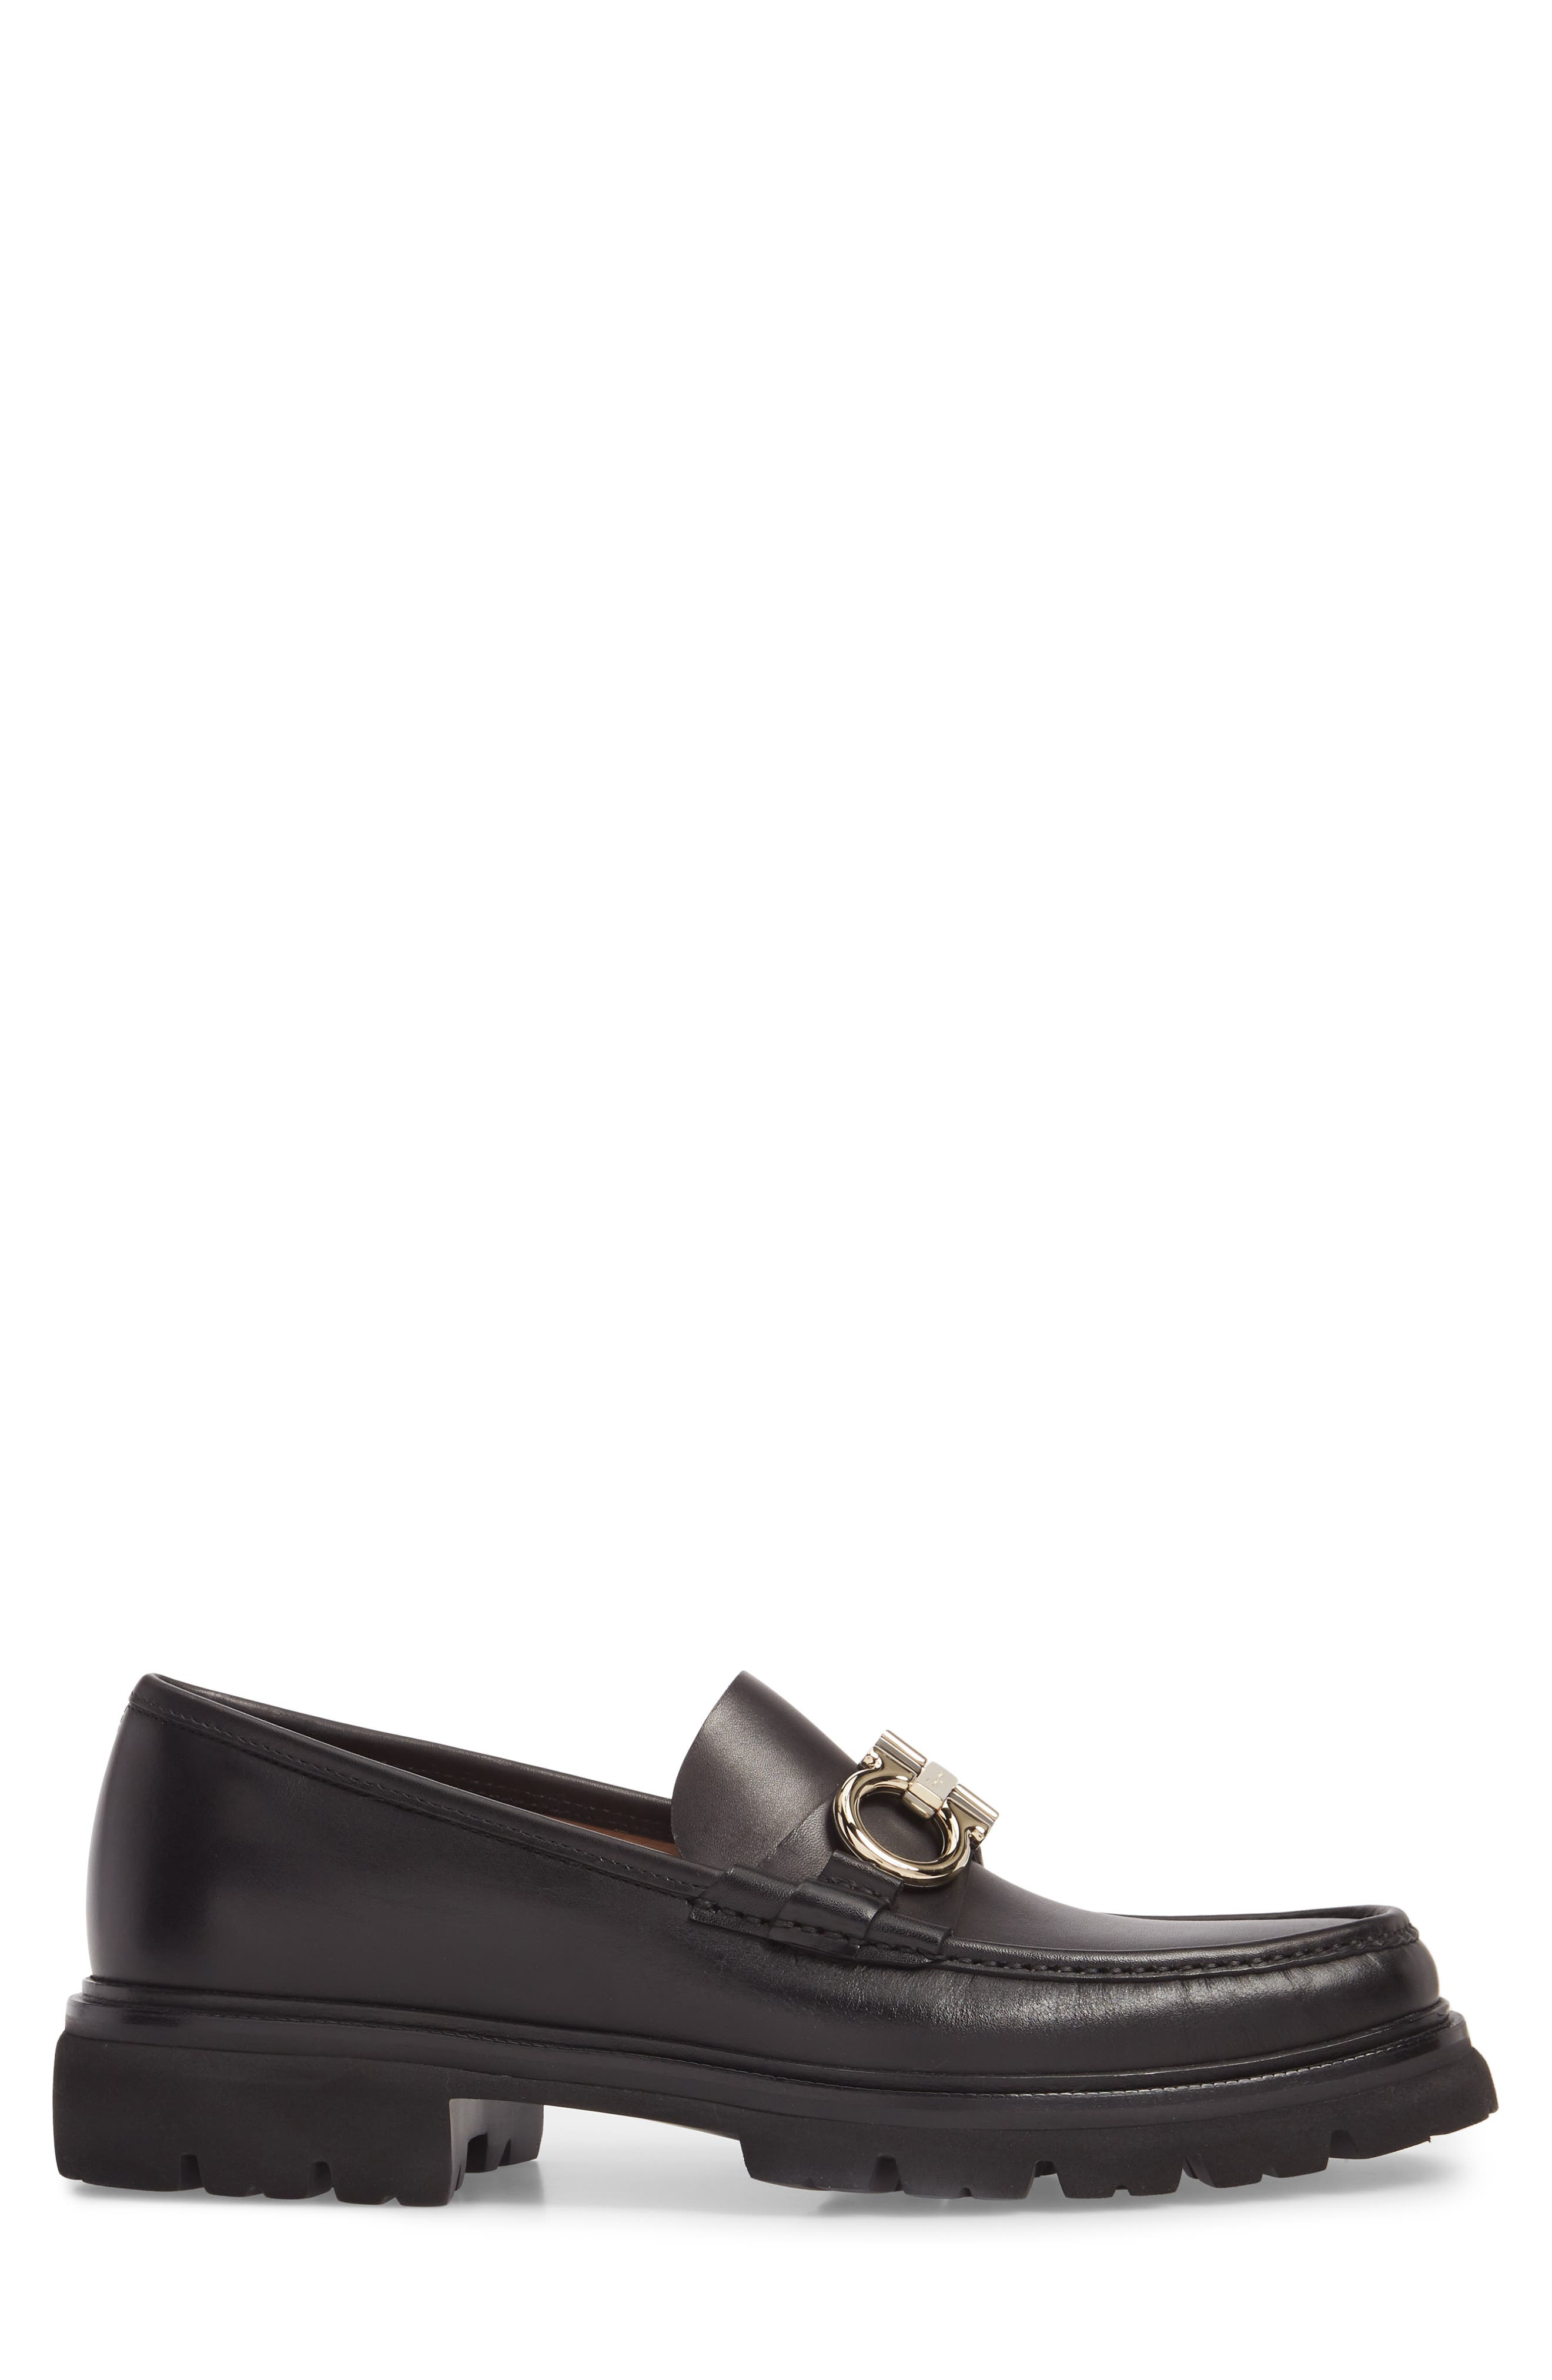 Bleecker Reversible Bit Lugged Loafer,                             Alternate thumbnail 3, color,                             NERO LEATHER